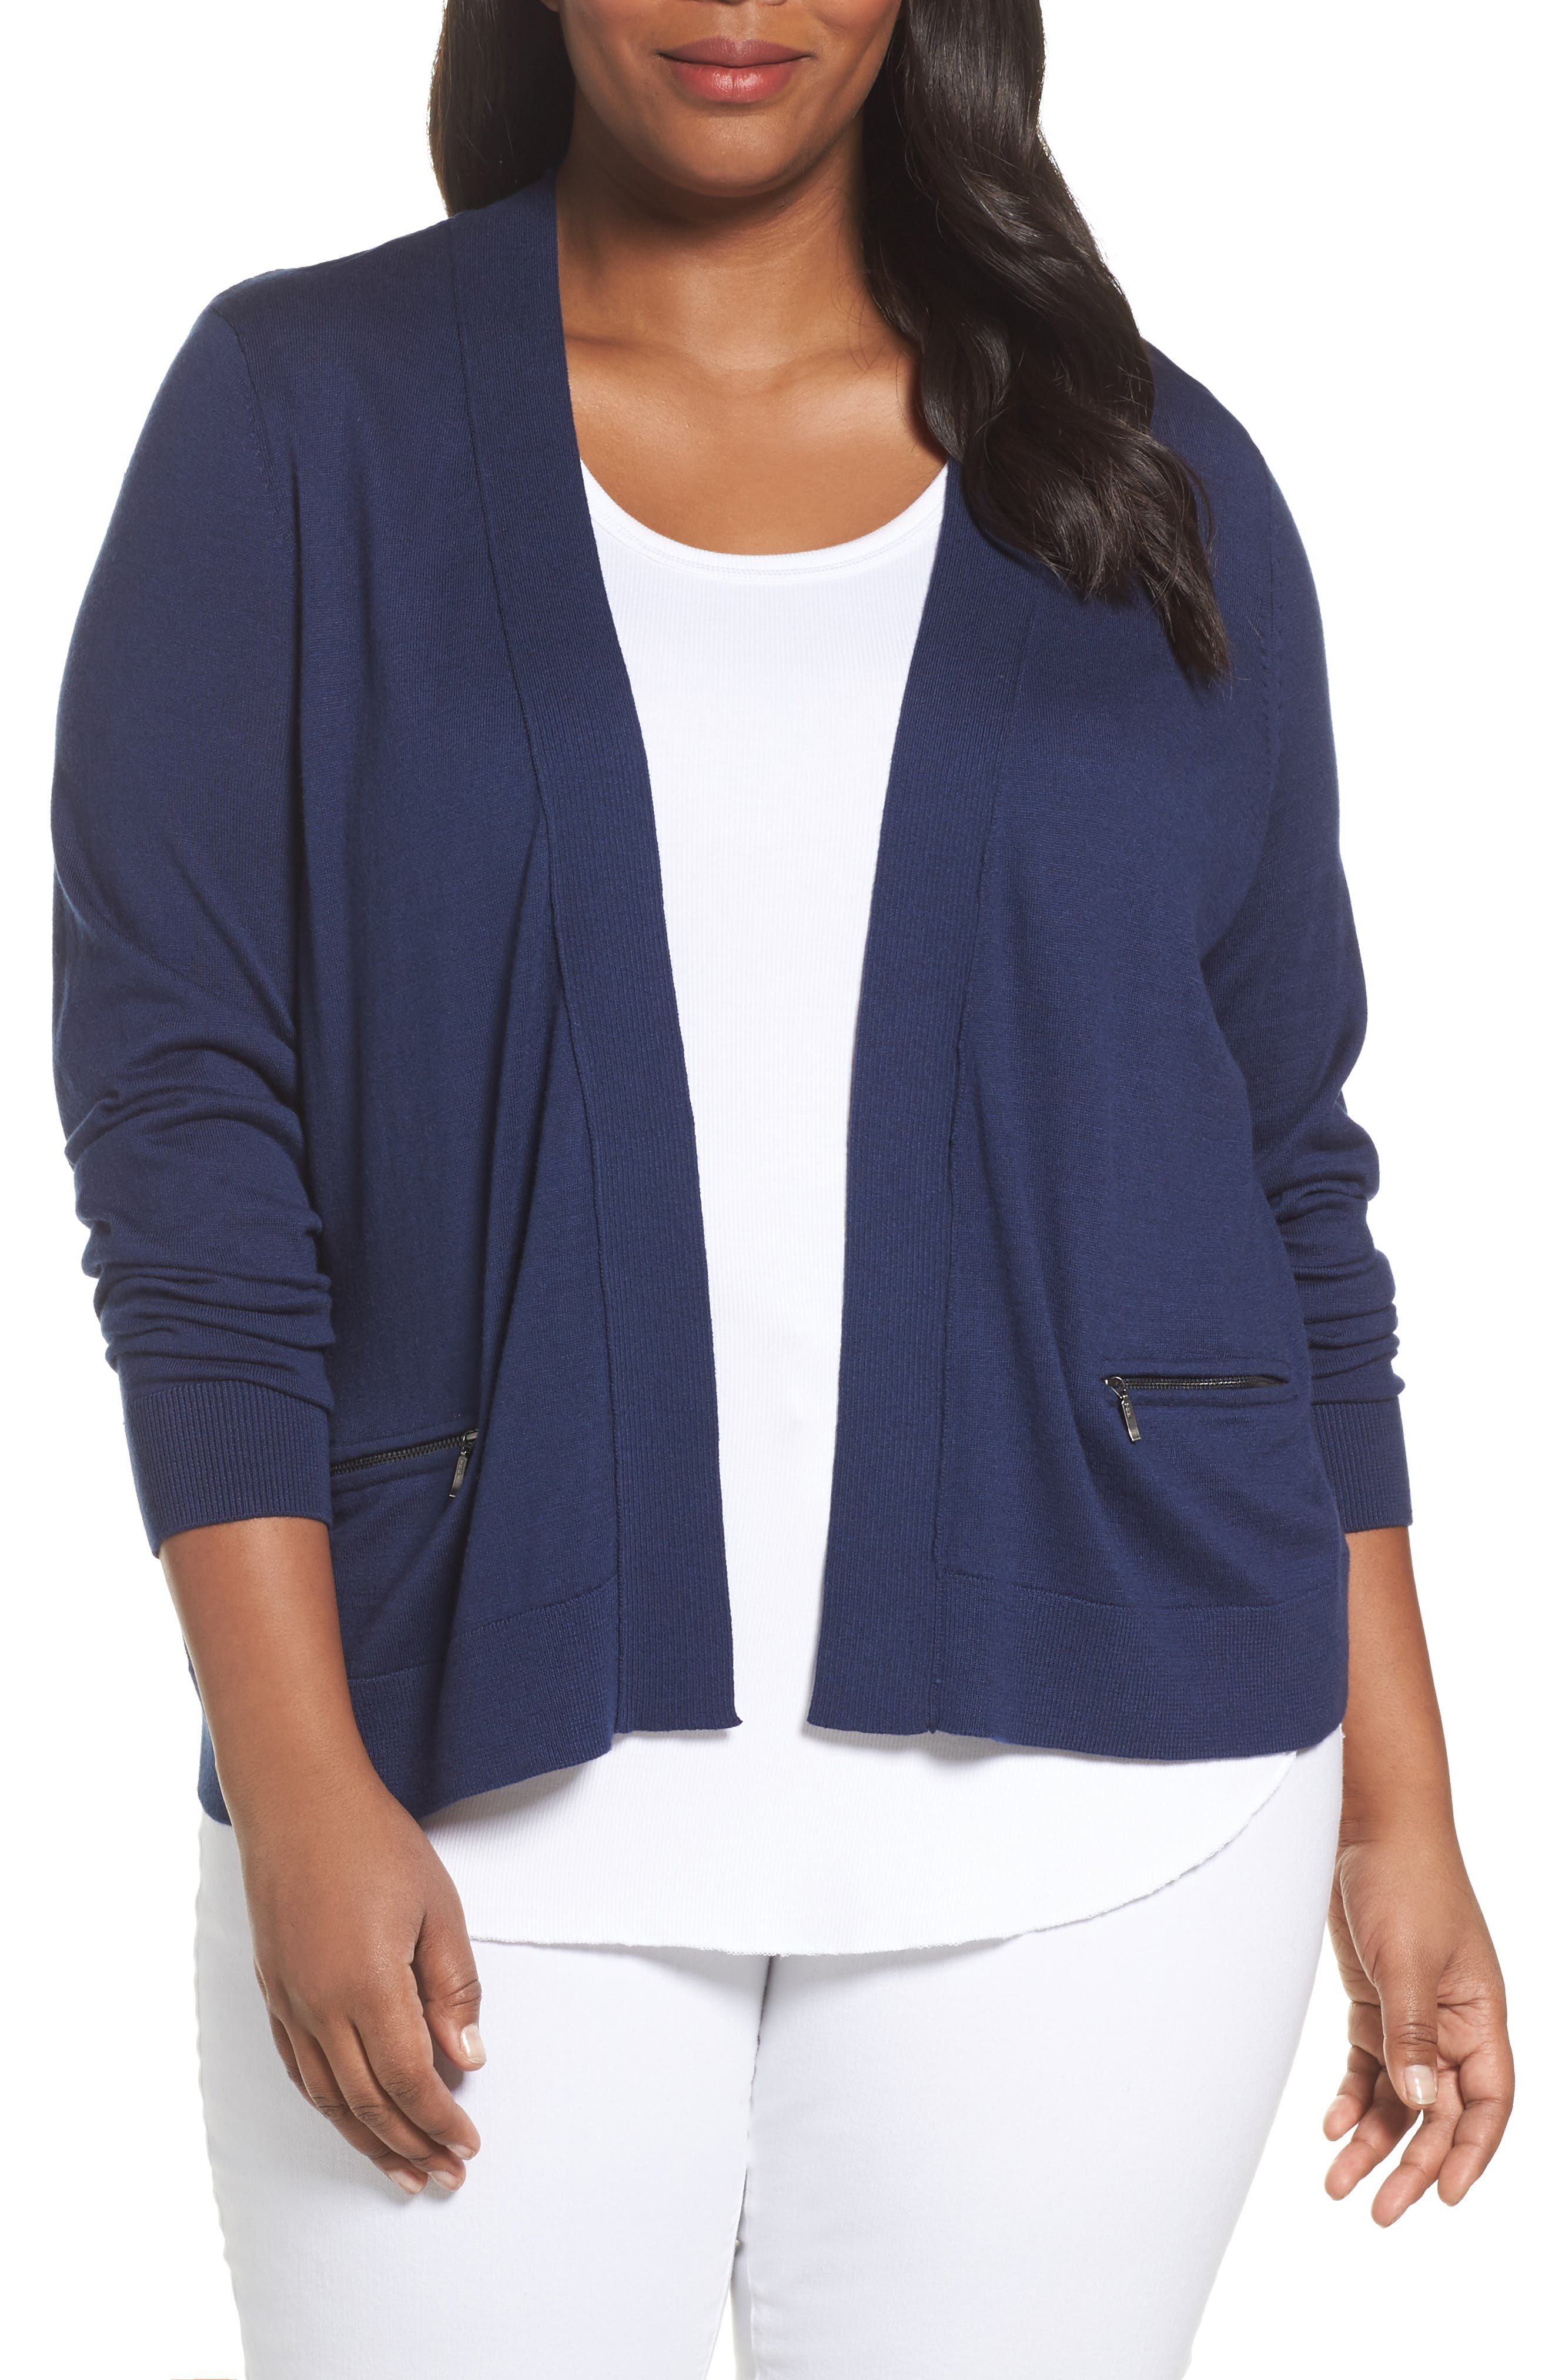 Alternate Image 1 Selected - Sejour Crop Open Front Cardigan (Plus Size)